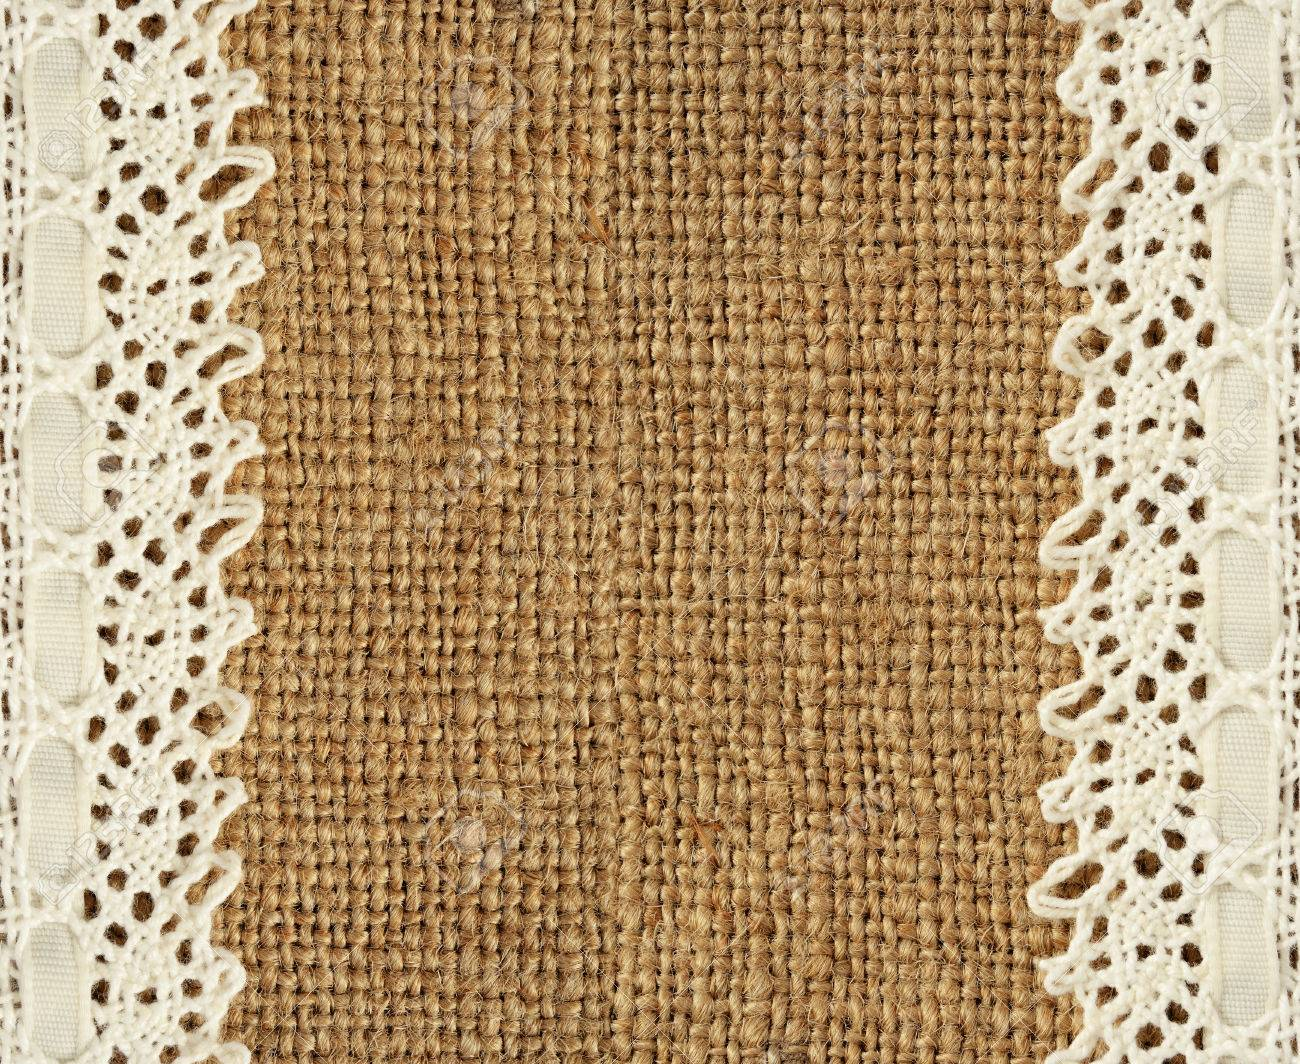 Burlap With Lace Edges For Background Stock Photo